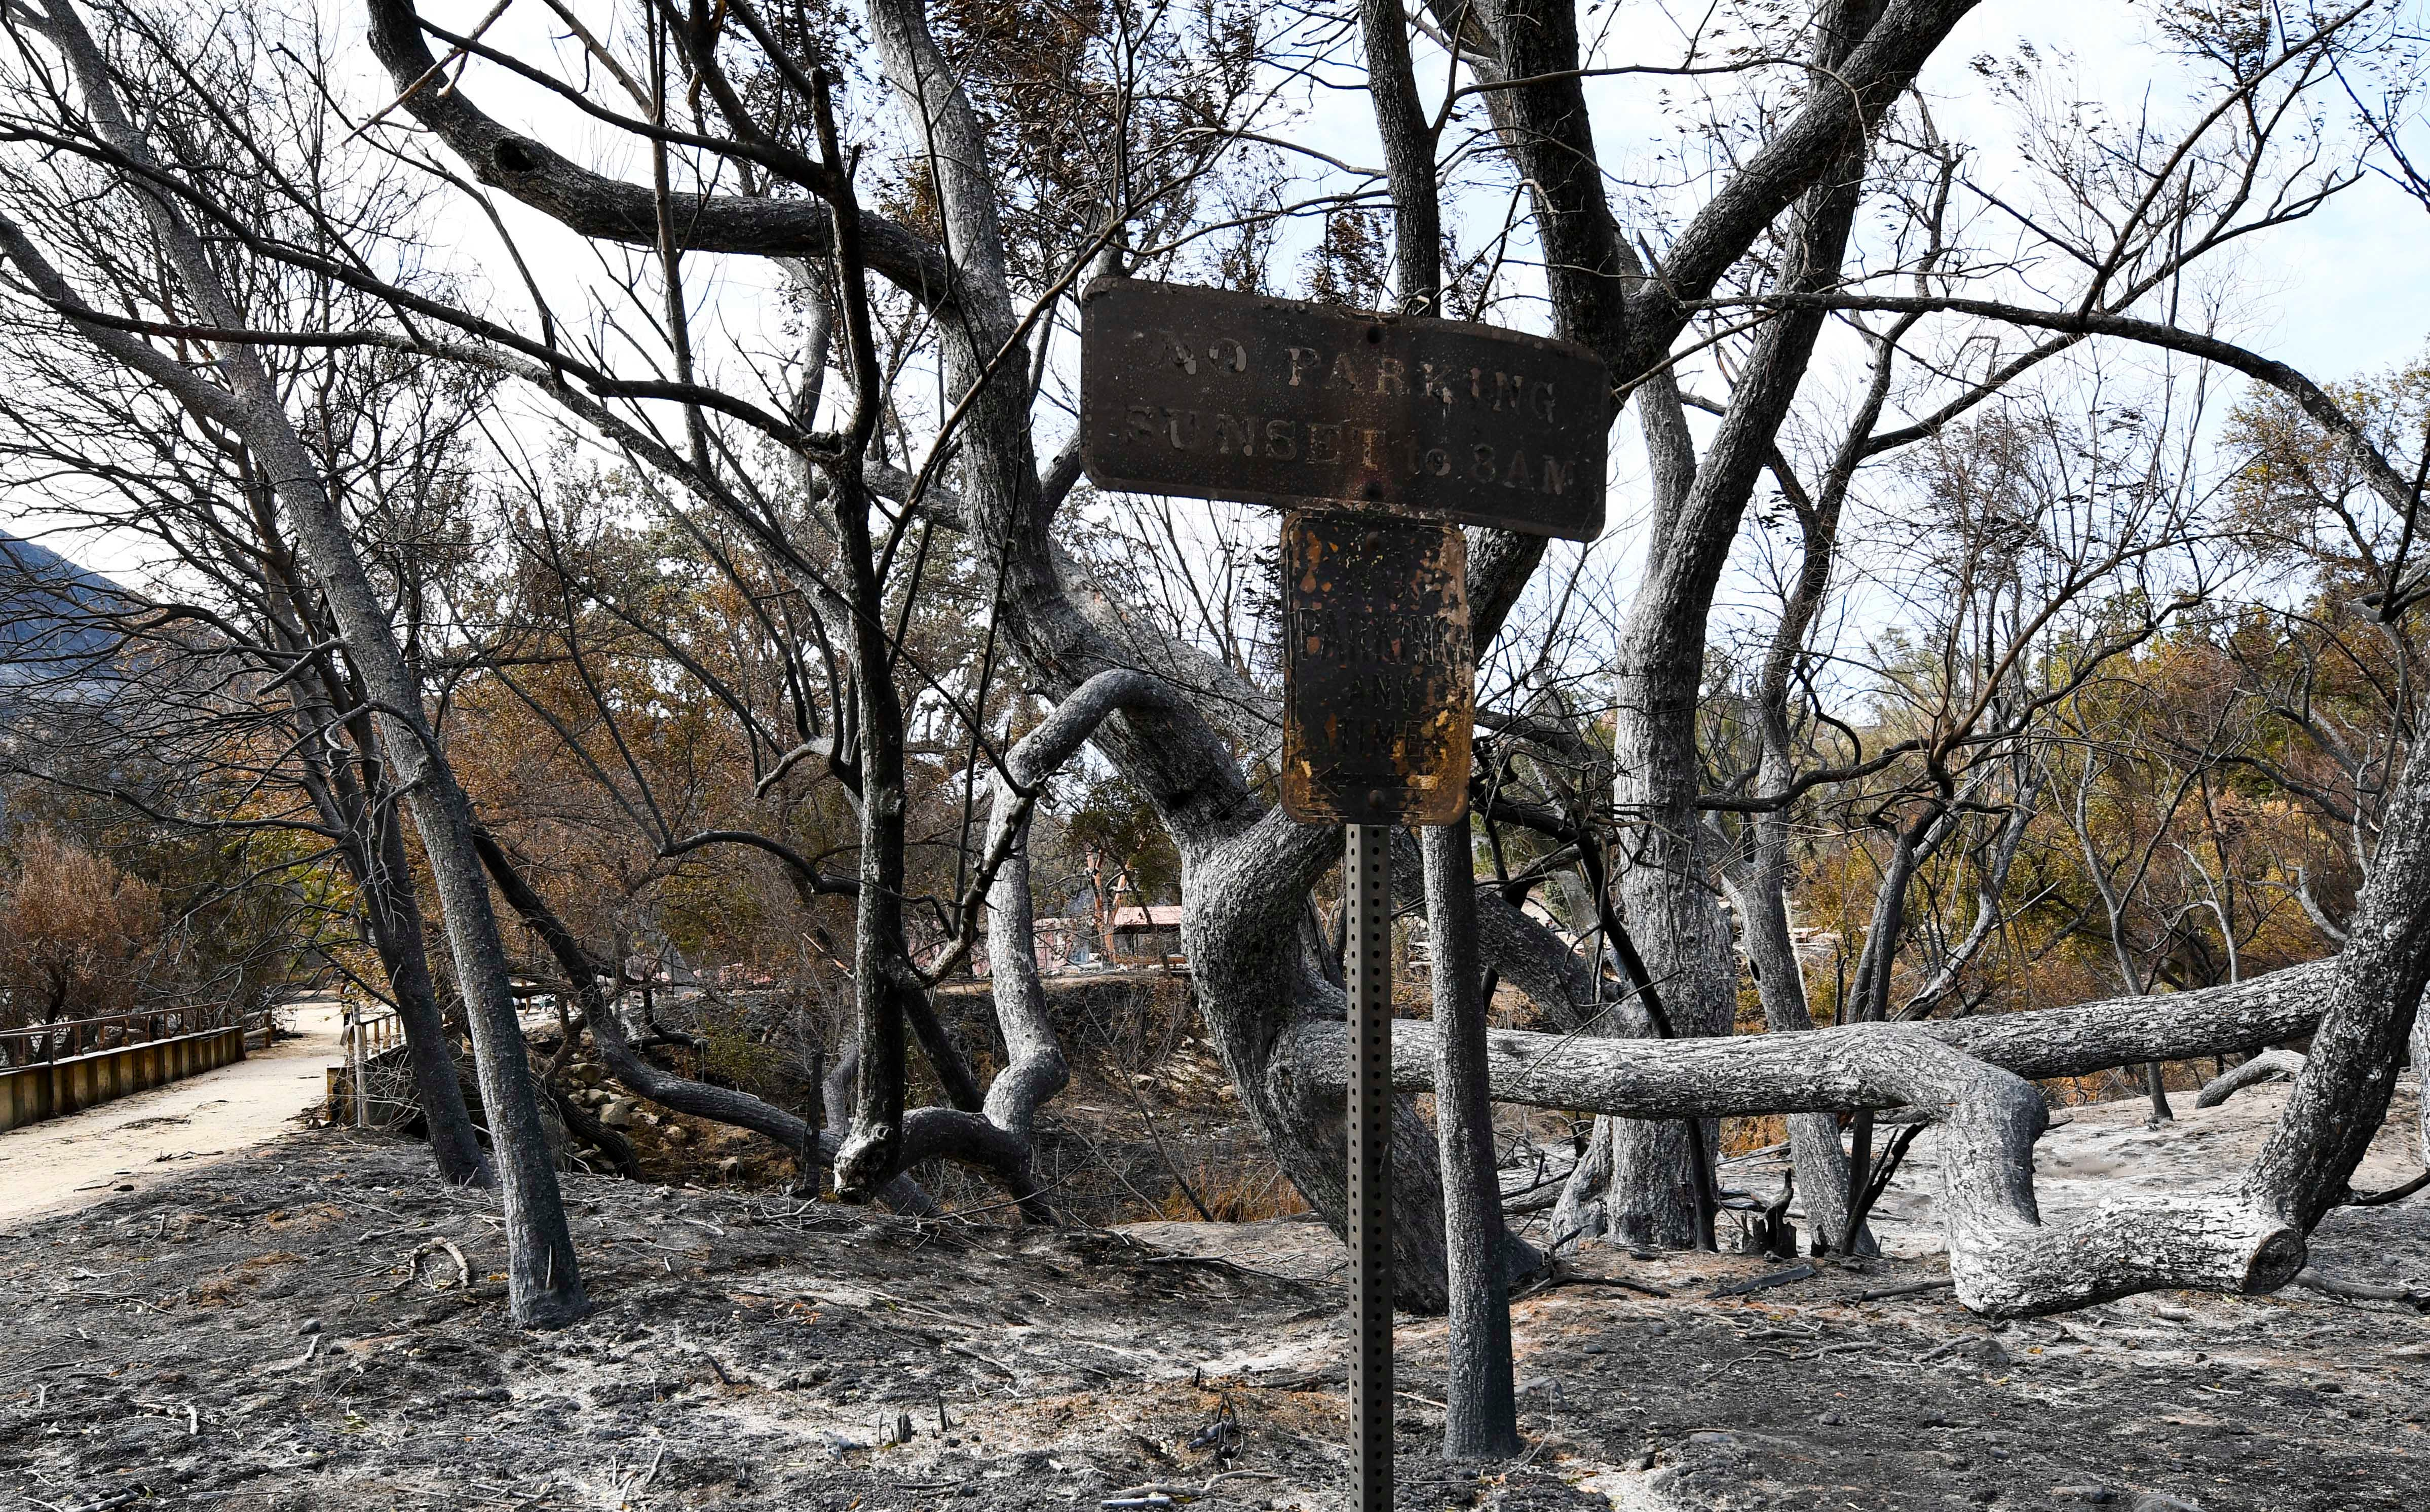 Paramount Ranch, movie production facility destroyed in Woosley Fire